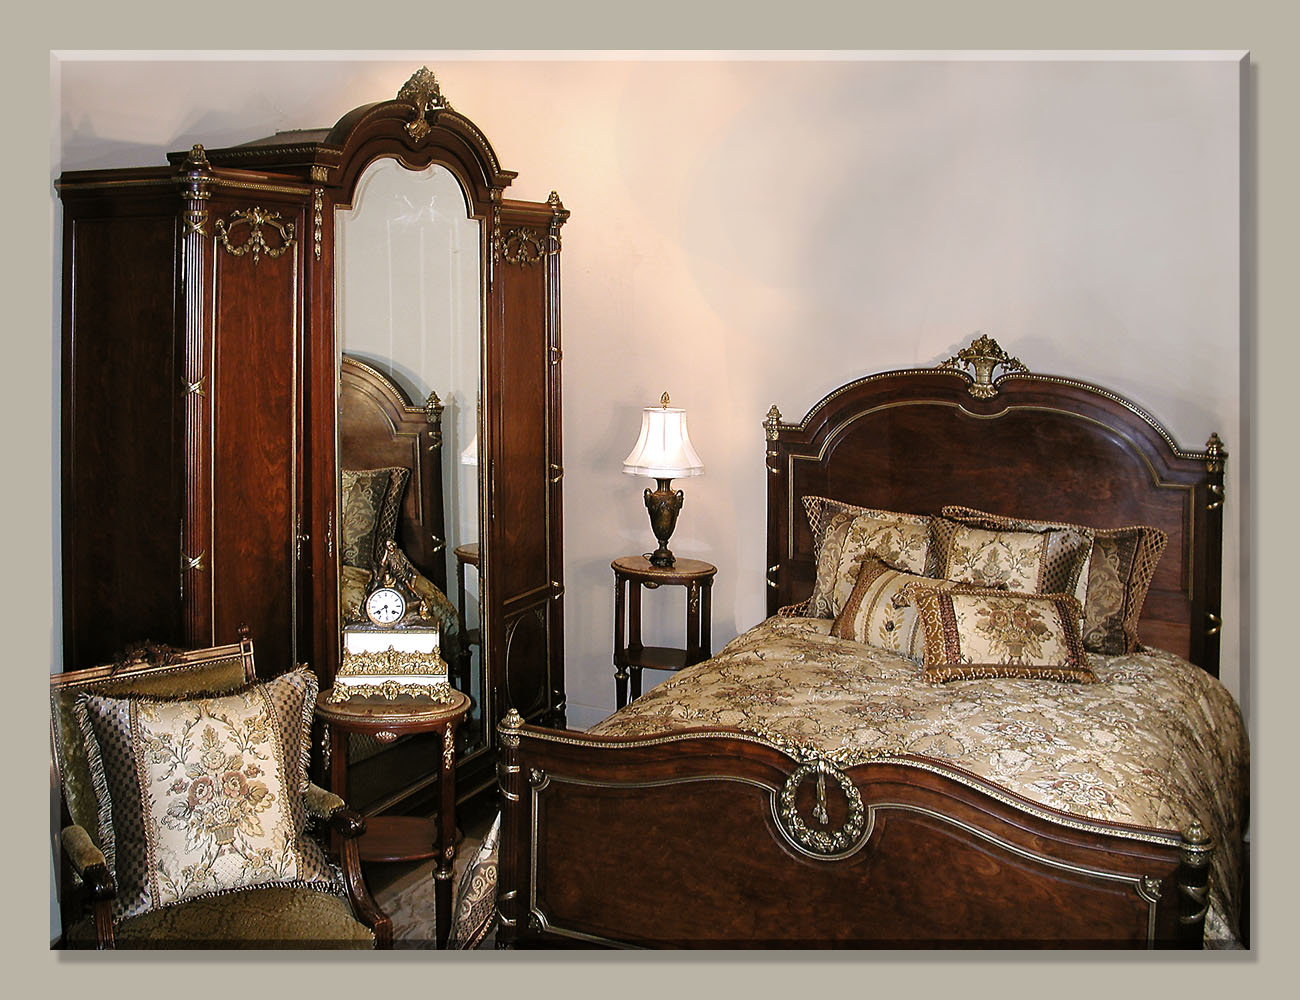 Louis xvi bedroom furniture - Louis Xvi Mahogany Antique Bedroom